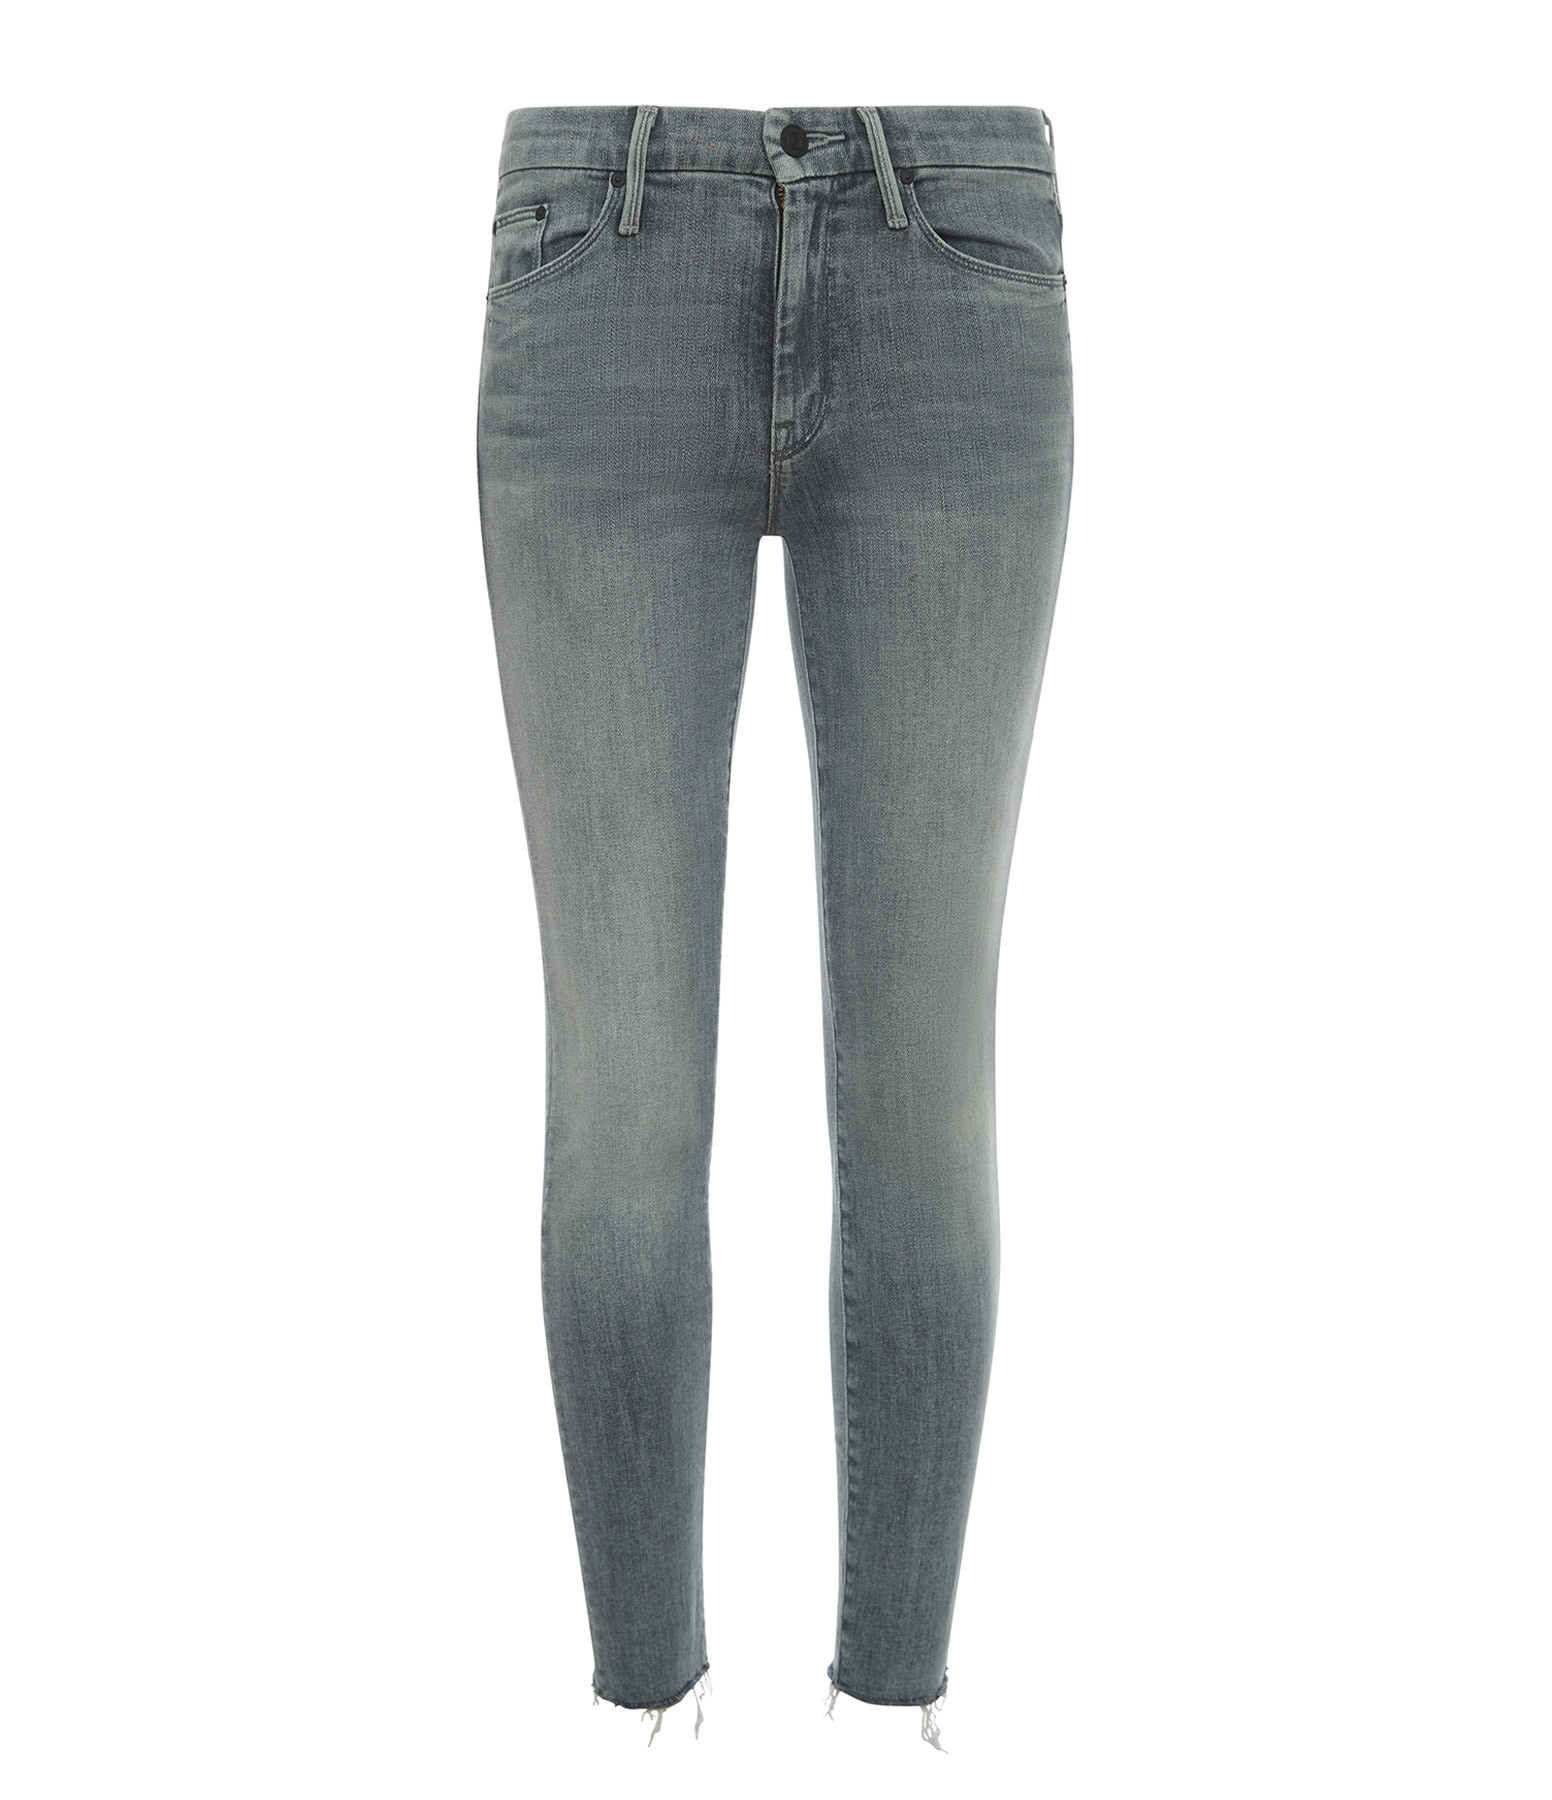 MOTHER - Jean The Looker Ankle Fray Skinny Anthracite